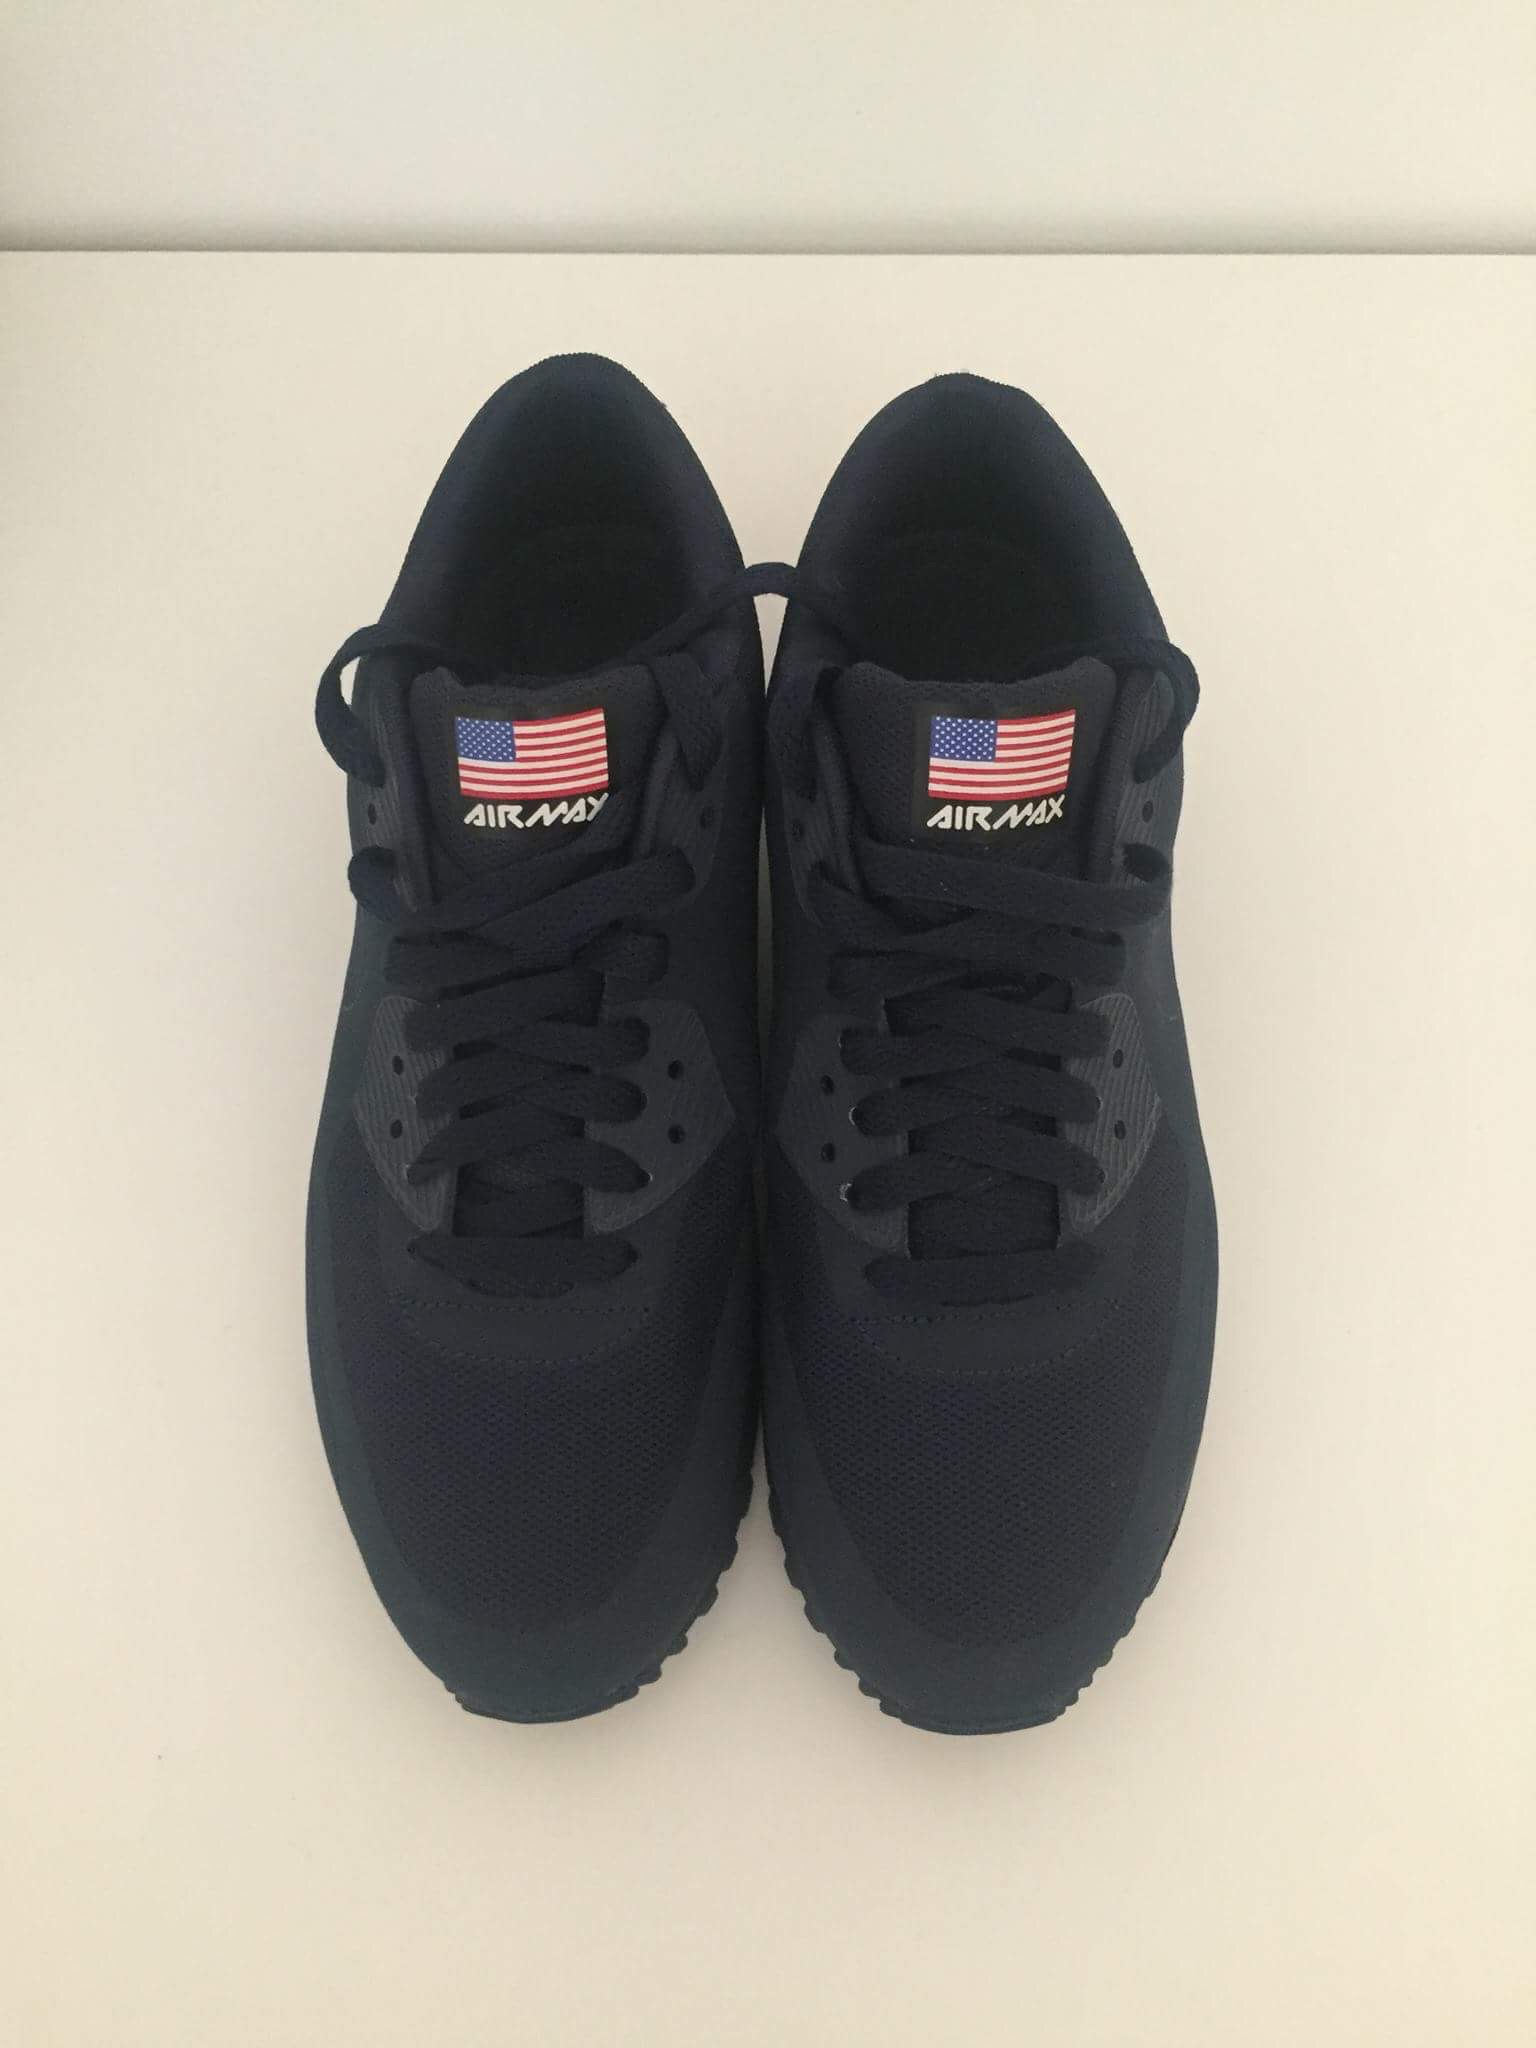 83f2c53ca2b2 Nike Nike Air Max 90 Hyperfuse Qs Independence Day Usa Navy Blue ...